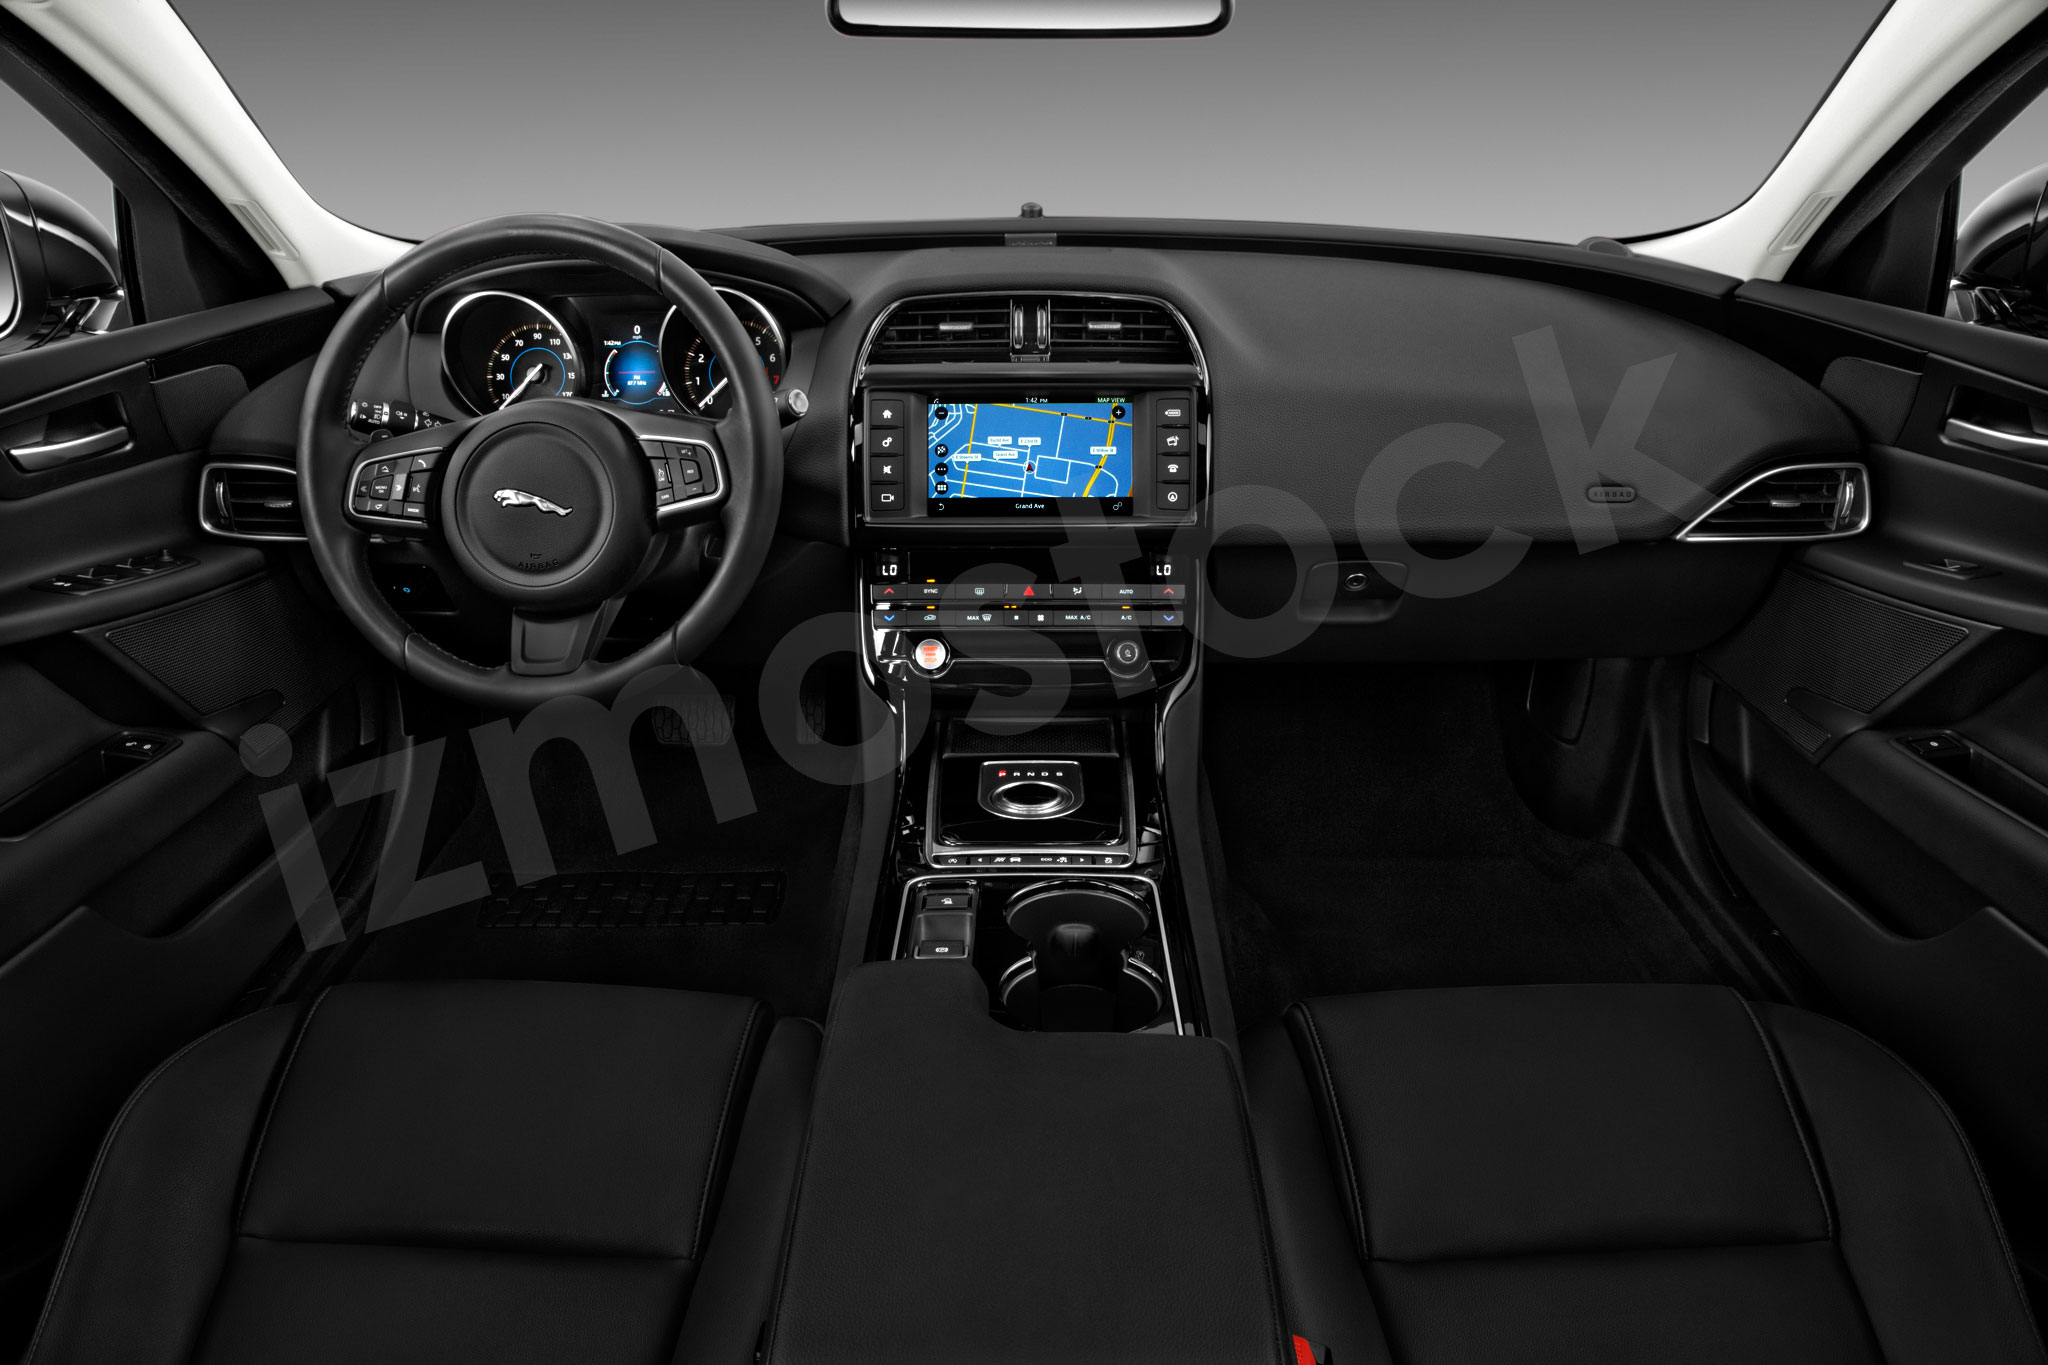 jaguar_17xesa1a_dashboard